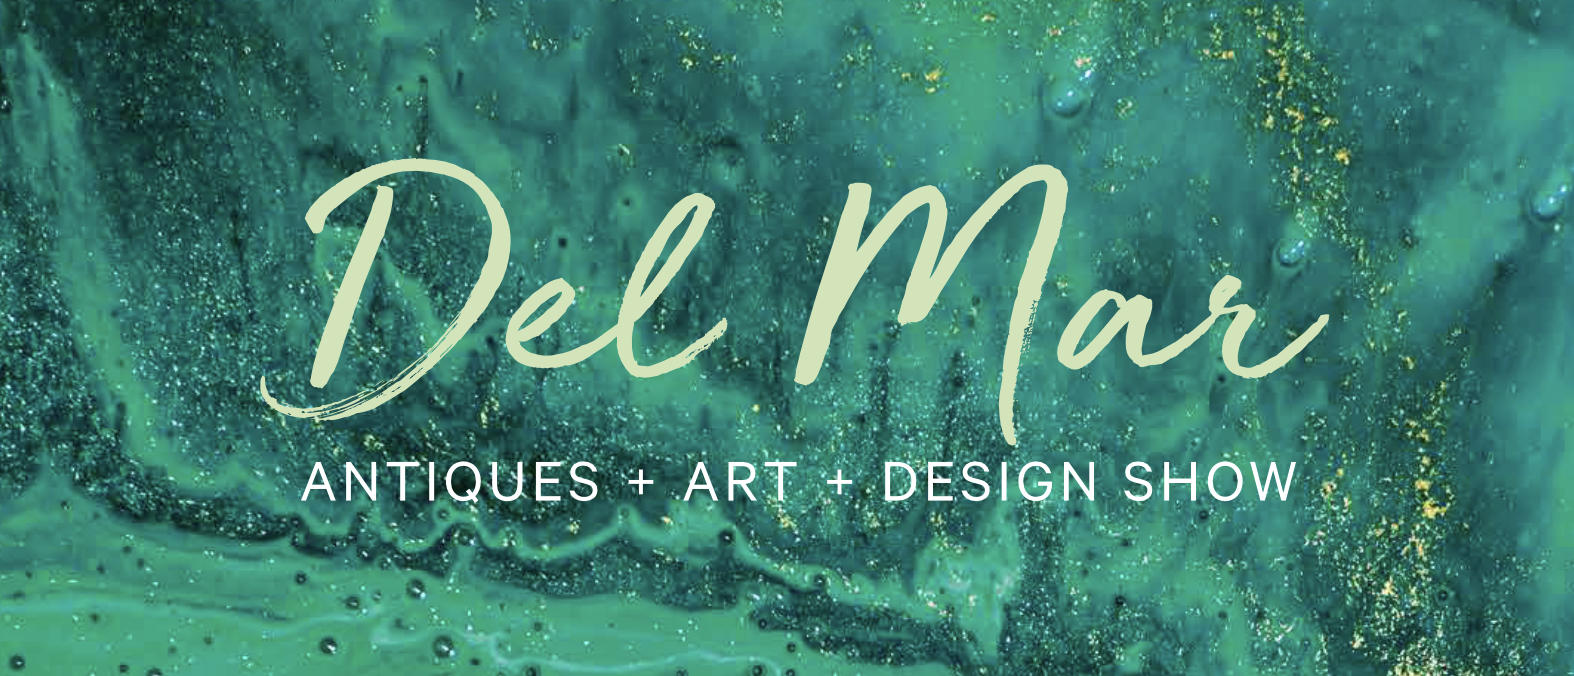 Del Mar Antiques + Art + Design Show